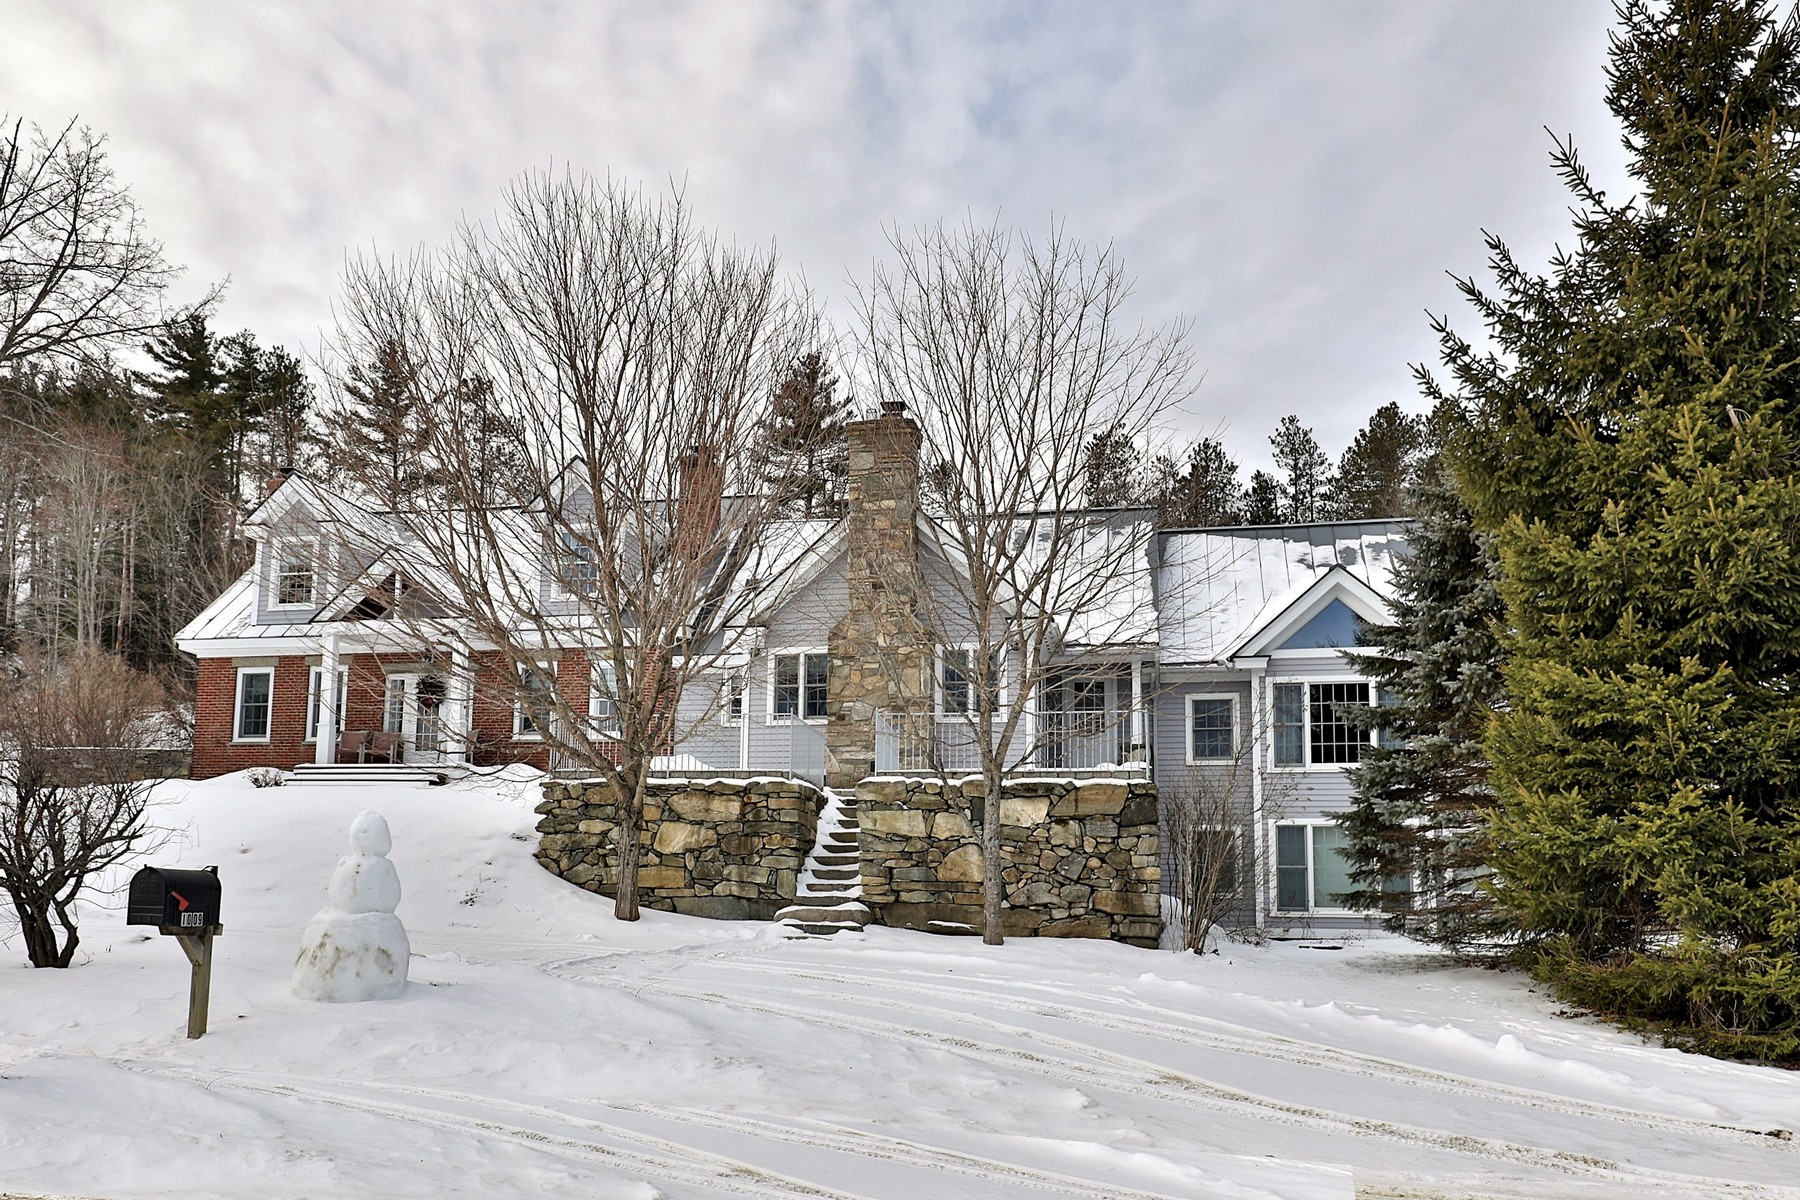 Single Family Homes for Sale at 1009 Middletown Road, Grafton 1009 Middletown Rd Grafton, Vermont 05146 United States